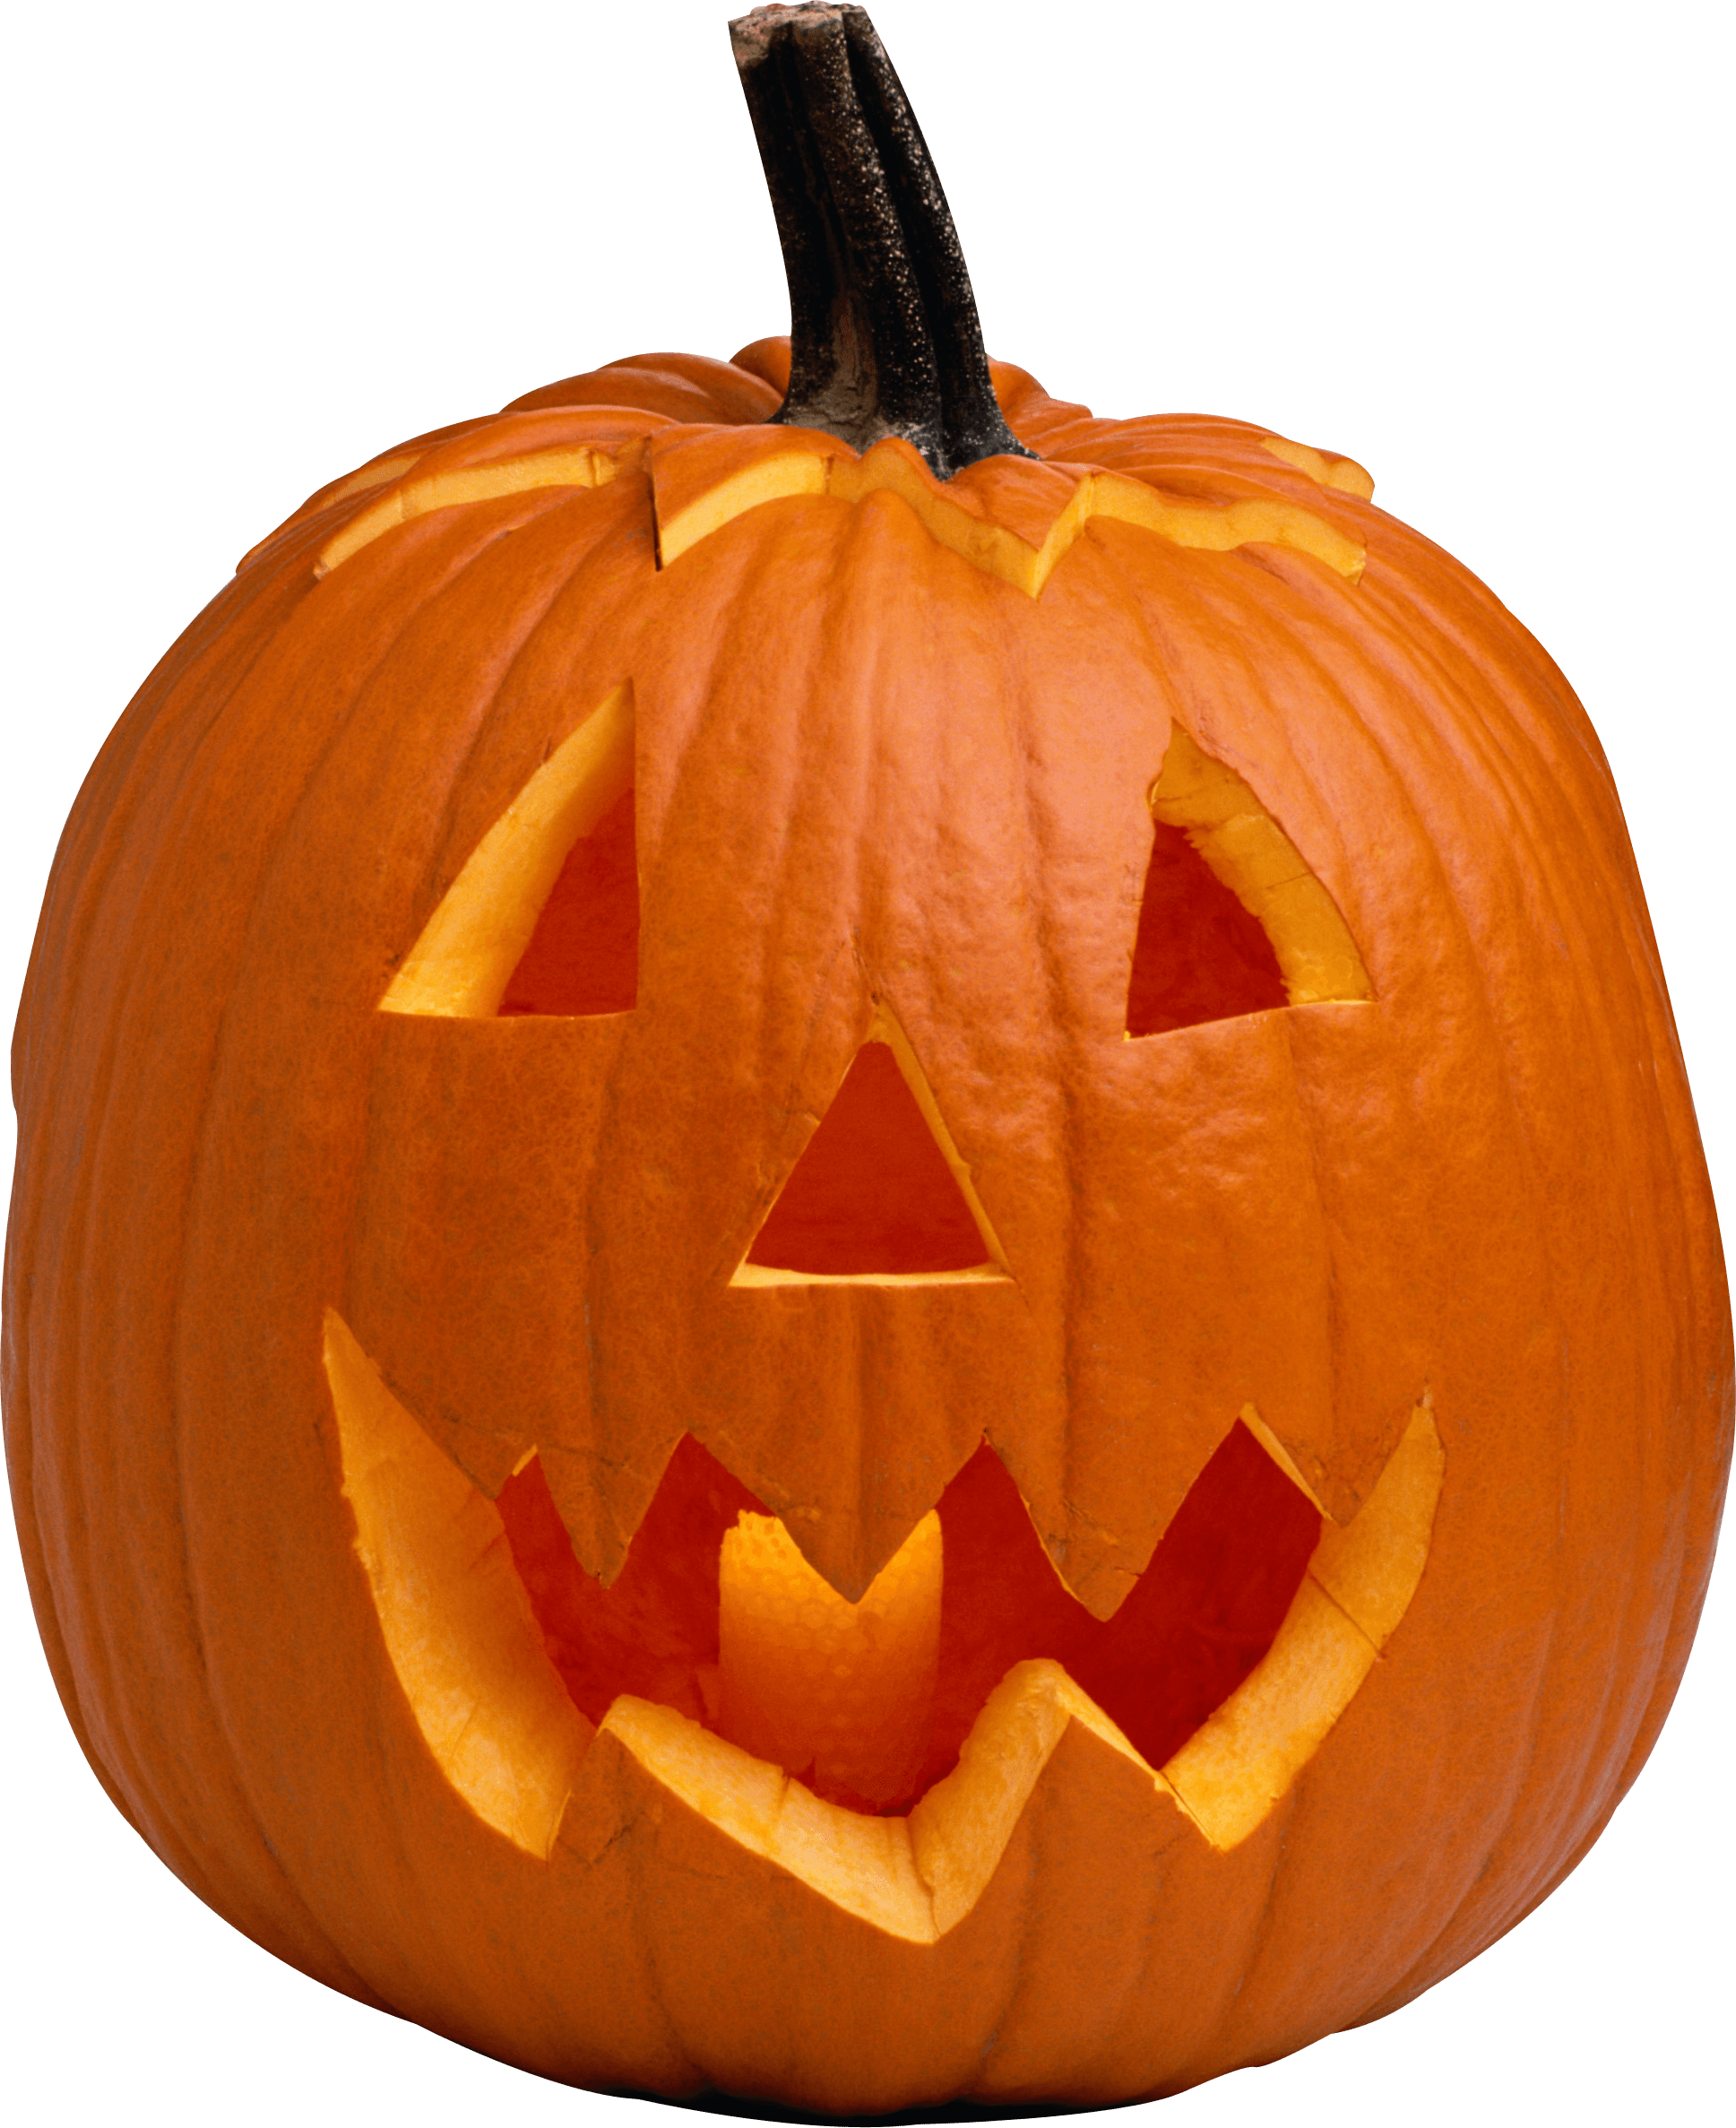 Halloween pumpkins png. Candle pumpkin transparent stickpng